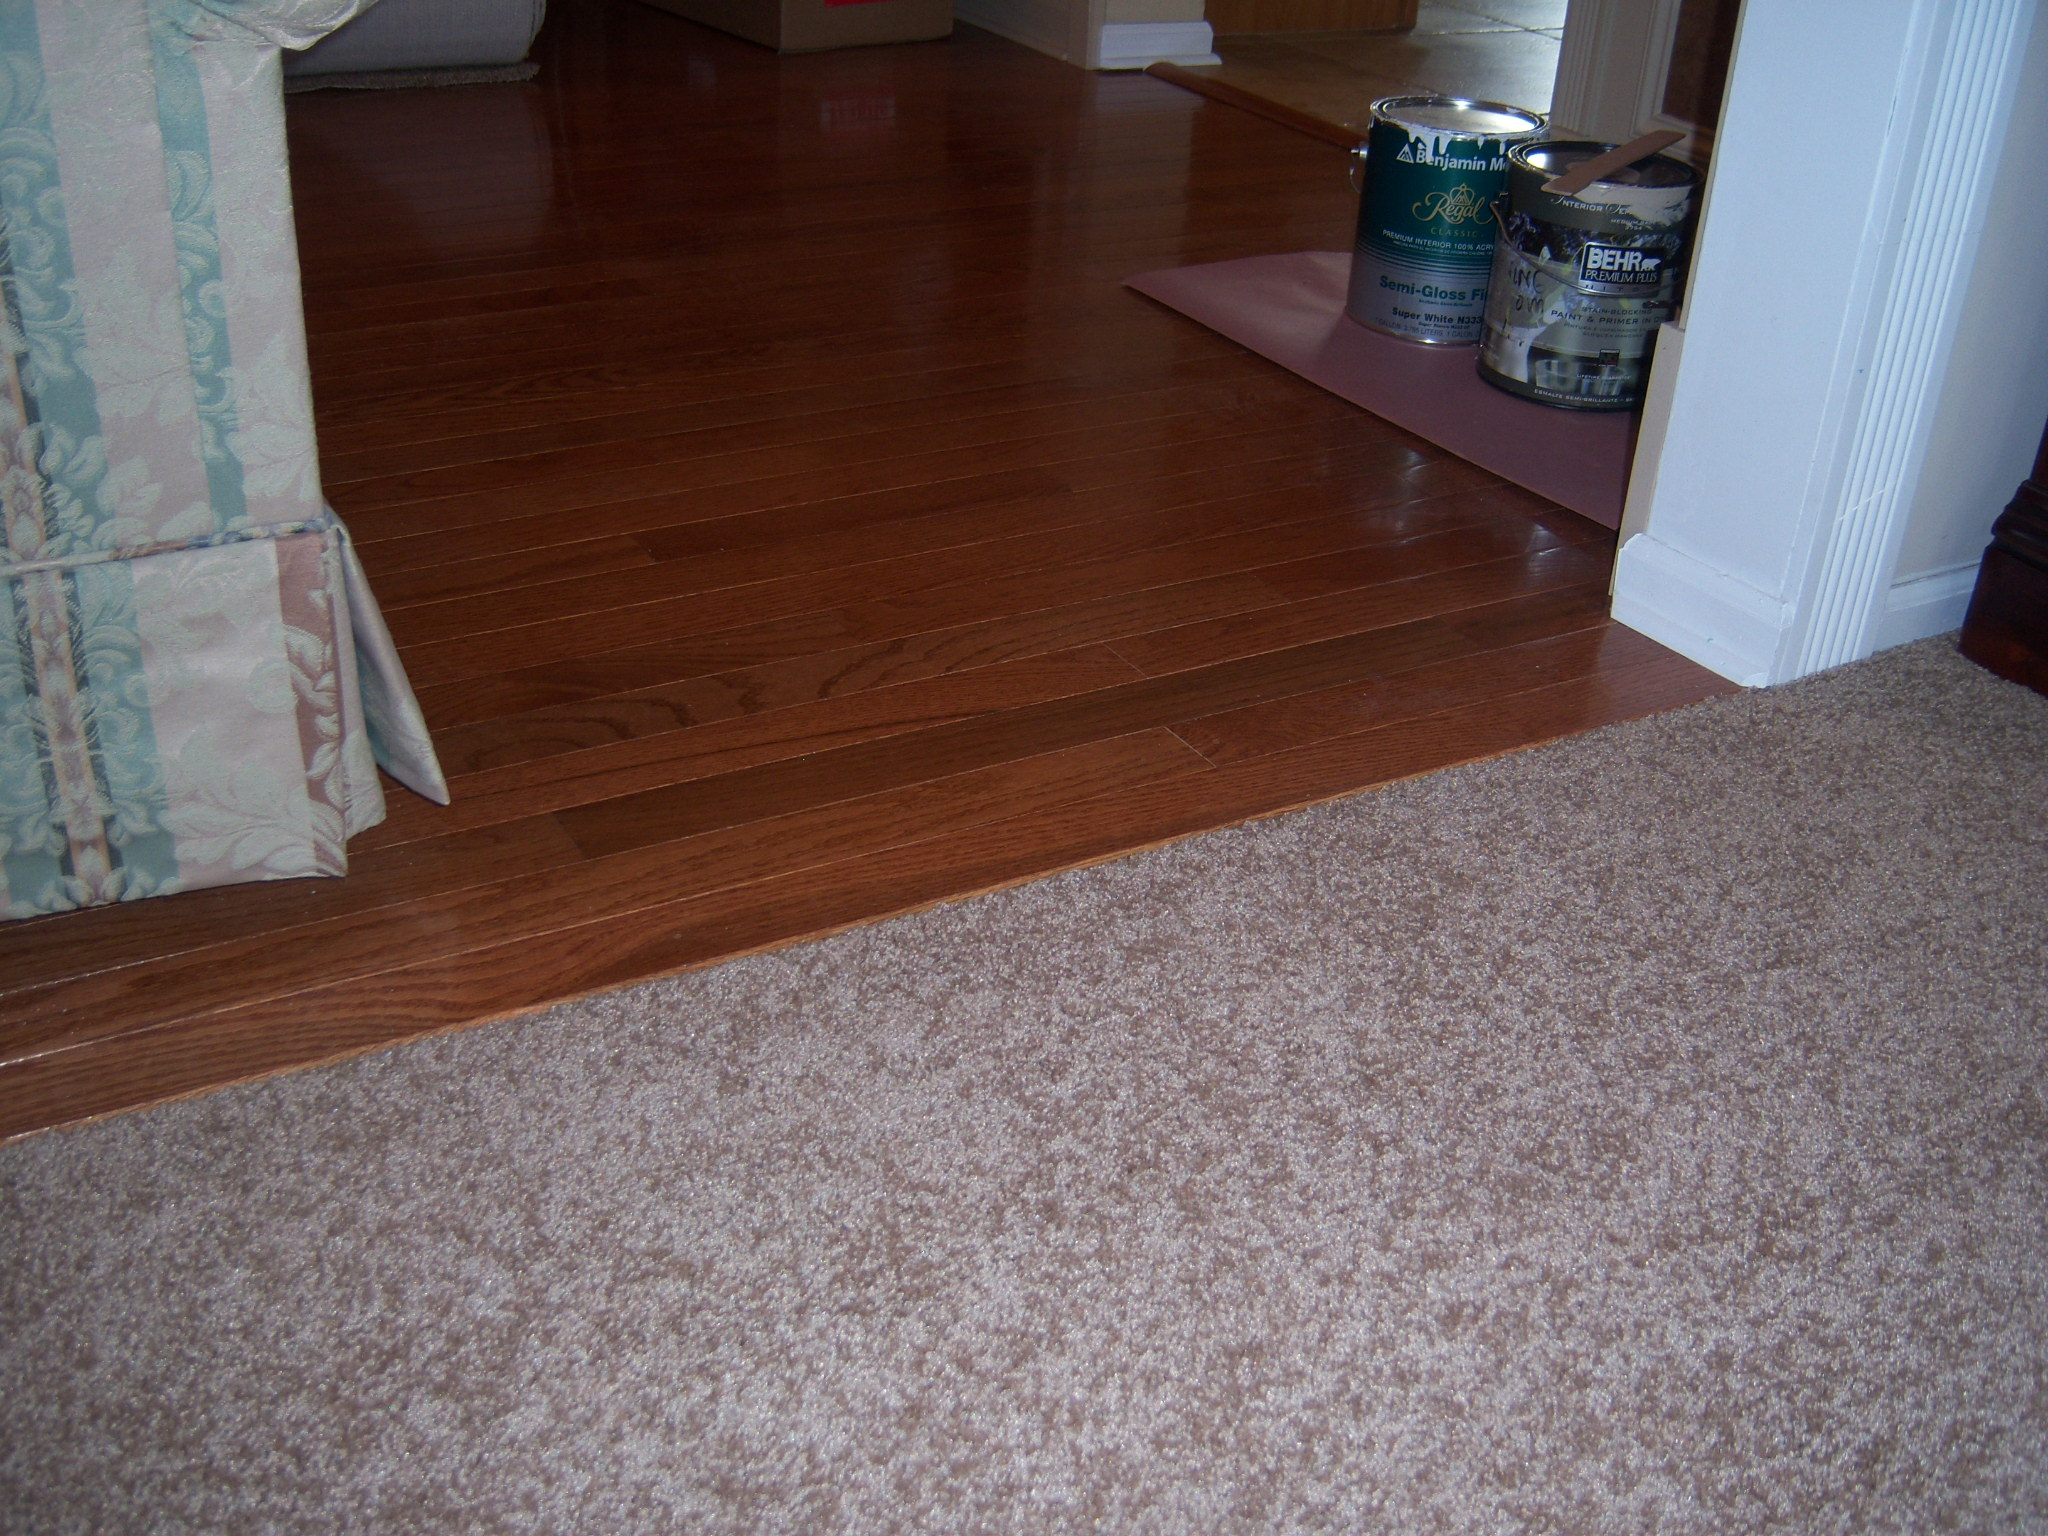 Carpet to hardwood transition